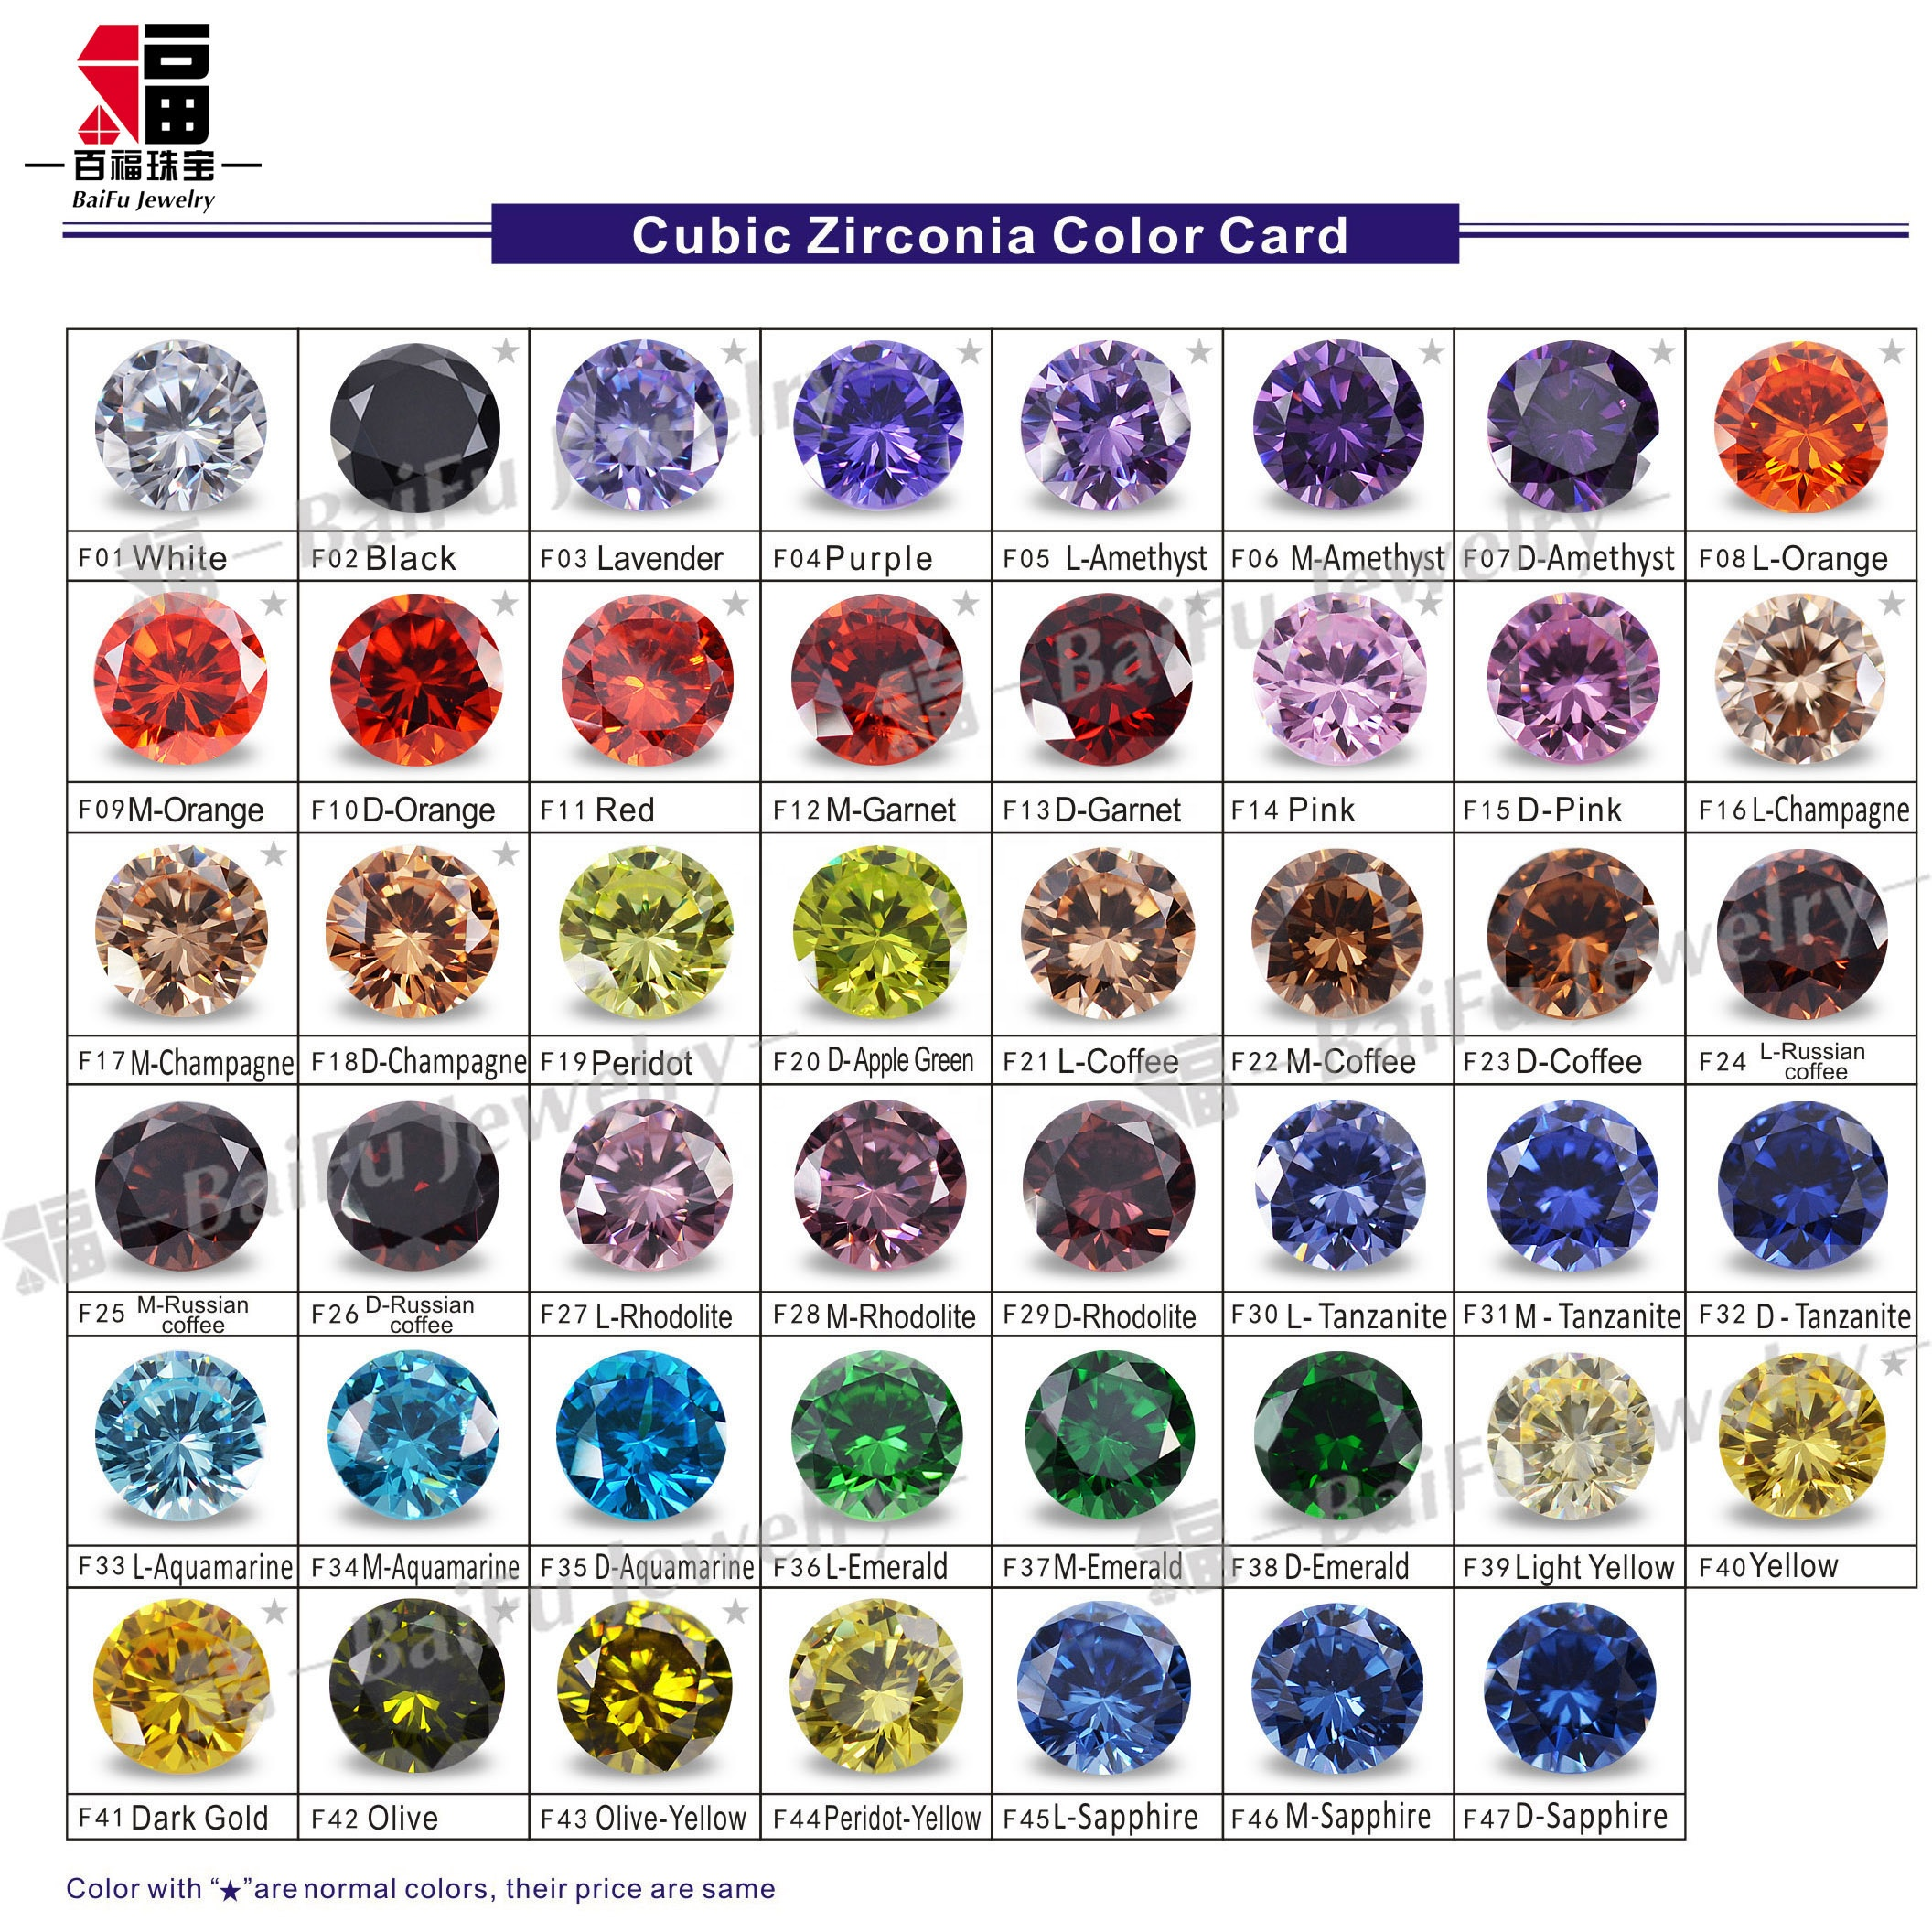 AAA good quality Round 8.0mm 47 kinds of colors CZ stones cubic zirconia samples